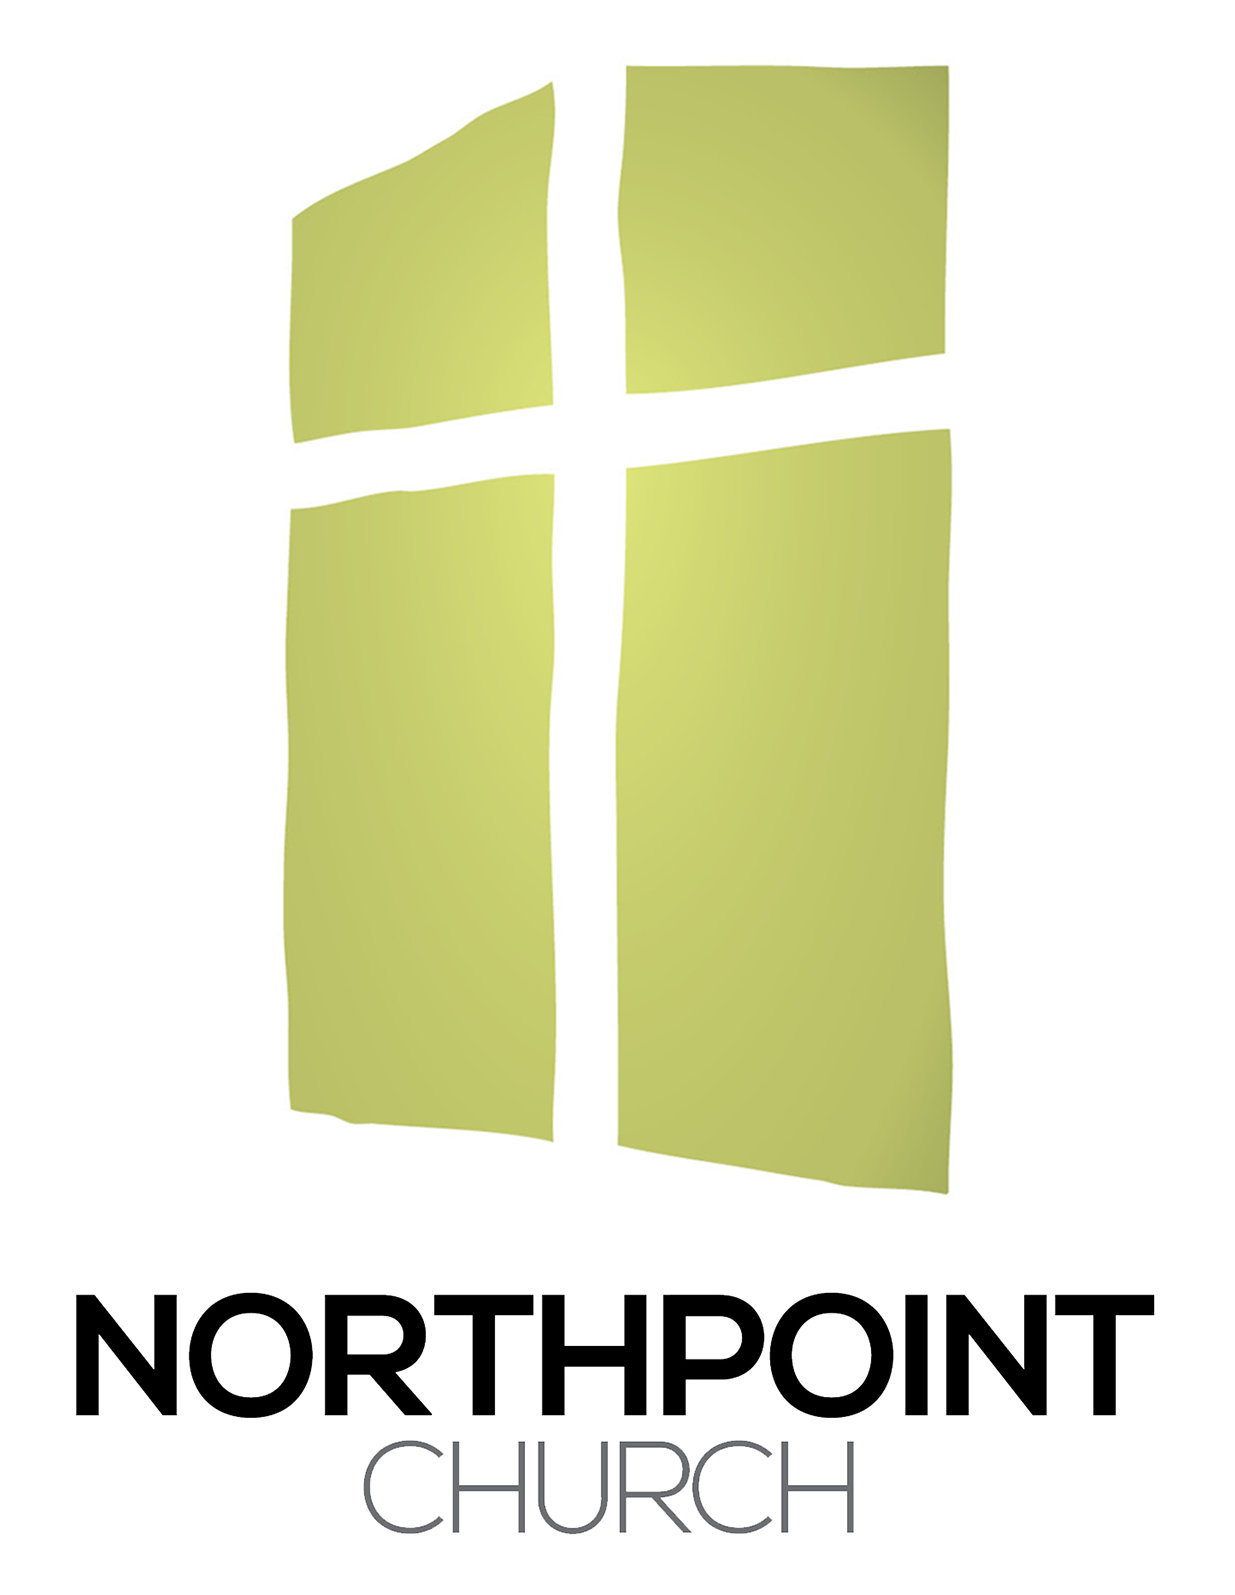 northpoint evangelical free church